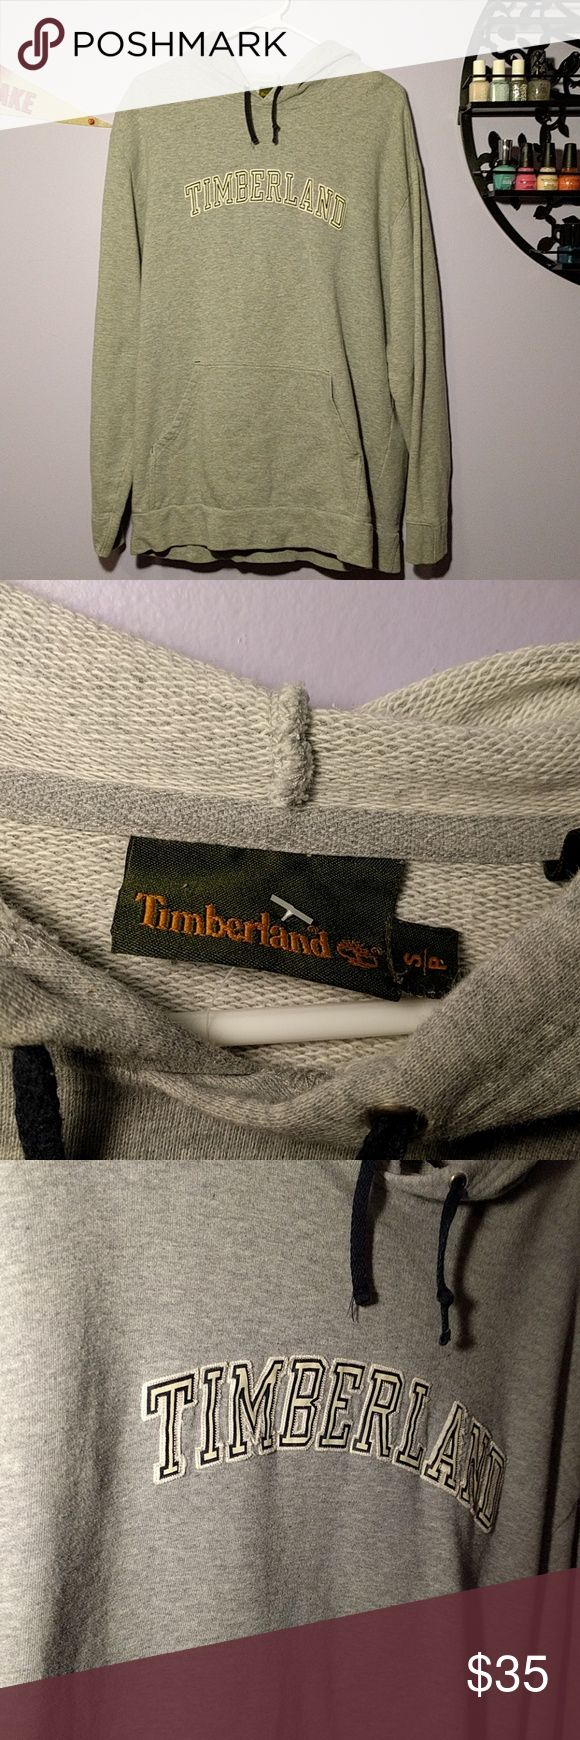 Timberland Hoodie *Grey Timberland Light Hoodie *Great casual look *Perfect for women looking for a light, long sweatshirt to pair with leggings *Used, in great condition   Please feel free to make offers or ask questions!  xoxo Karlynn Timberland Shirts Sweatshirts & Hoodies